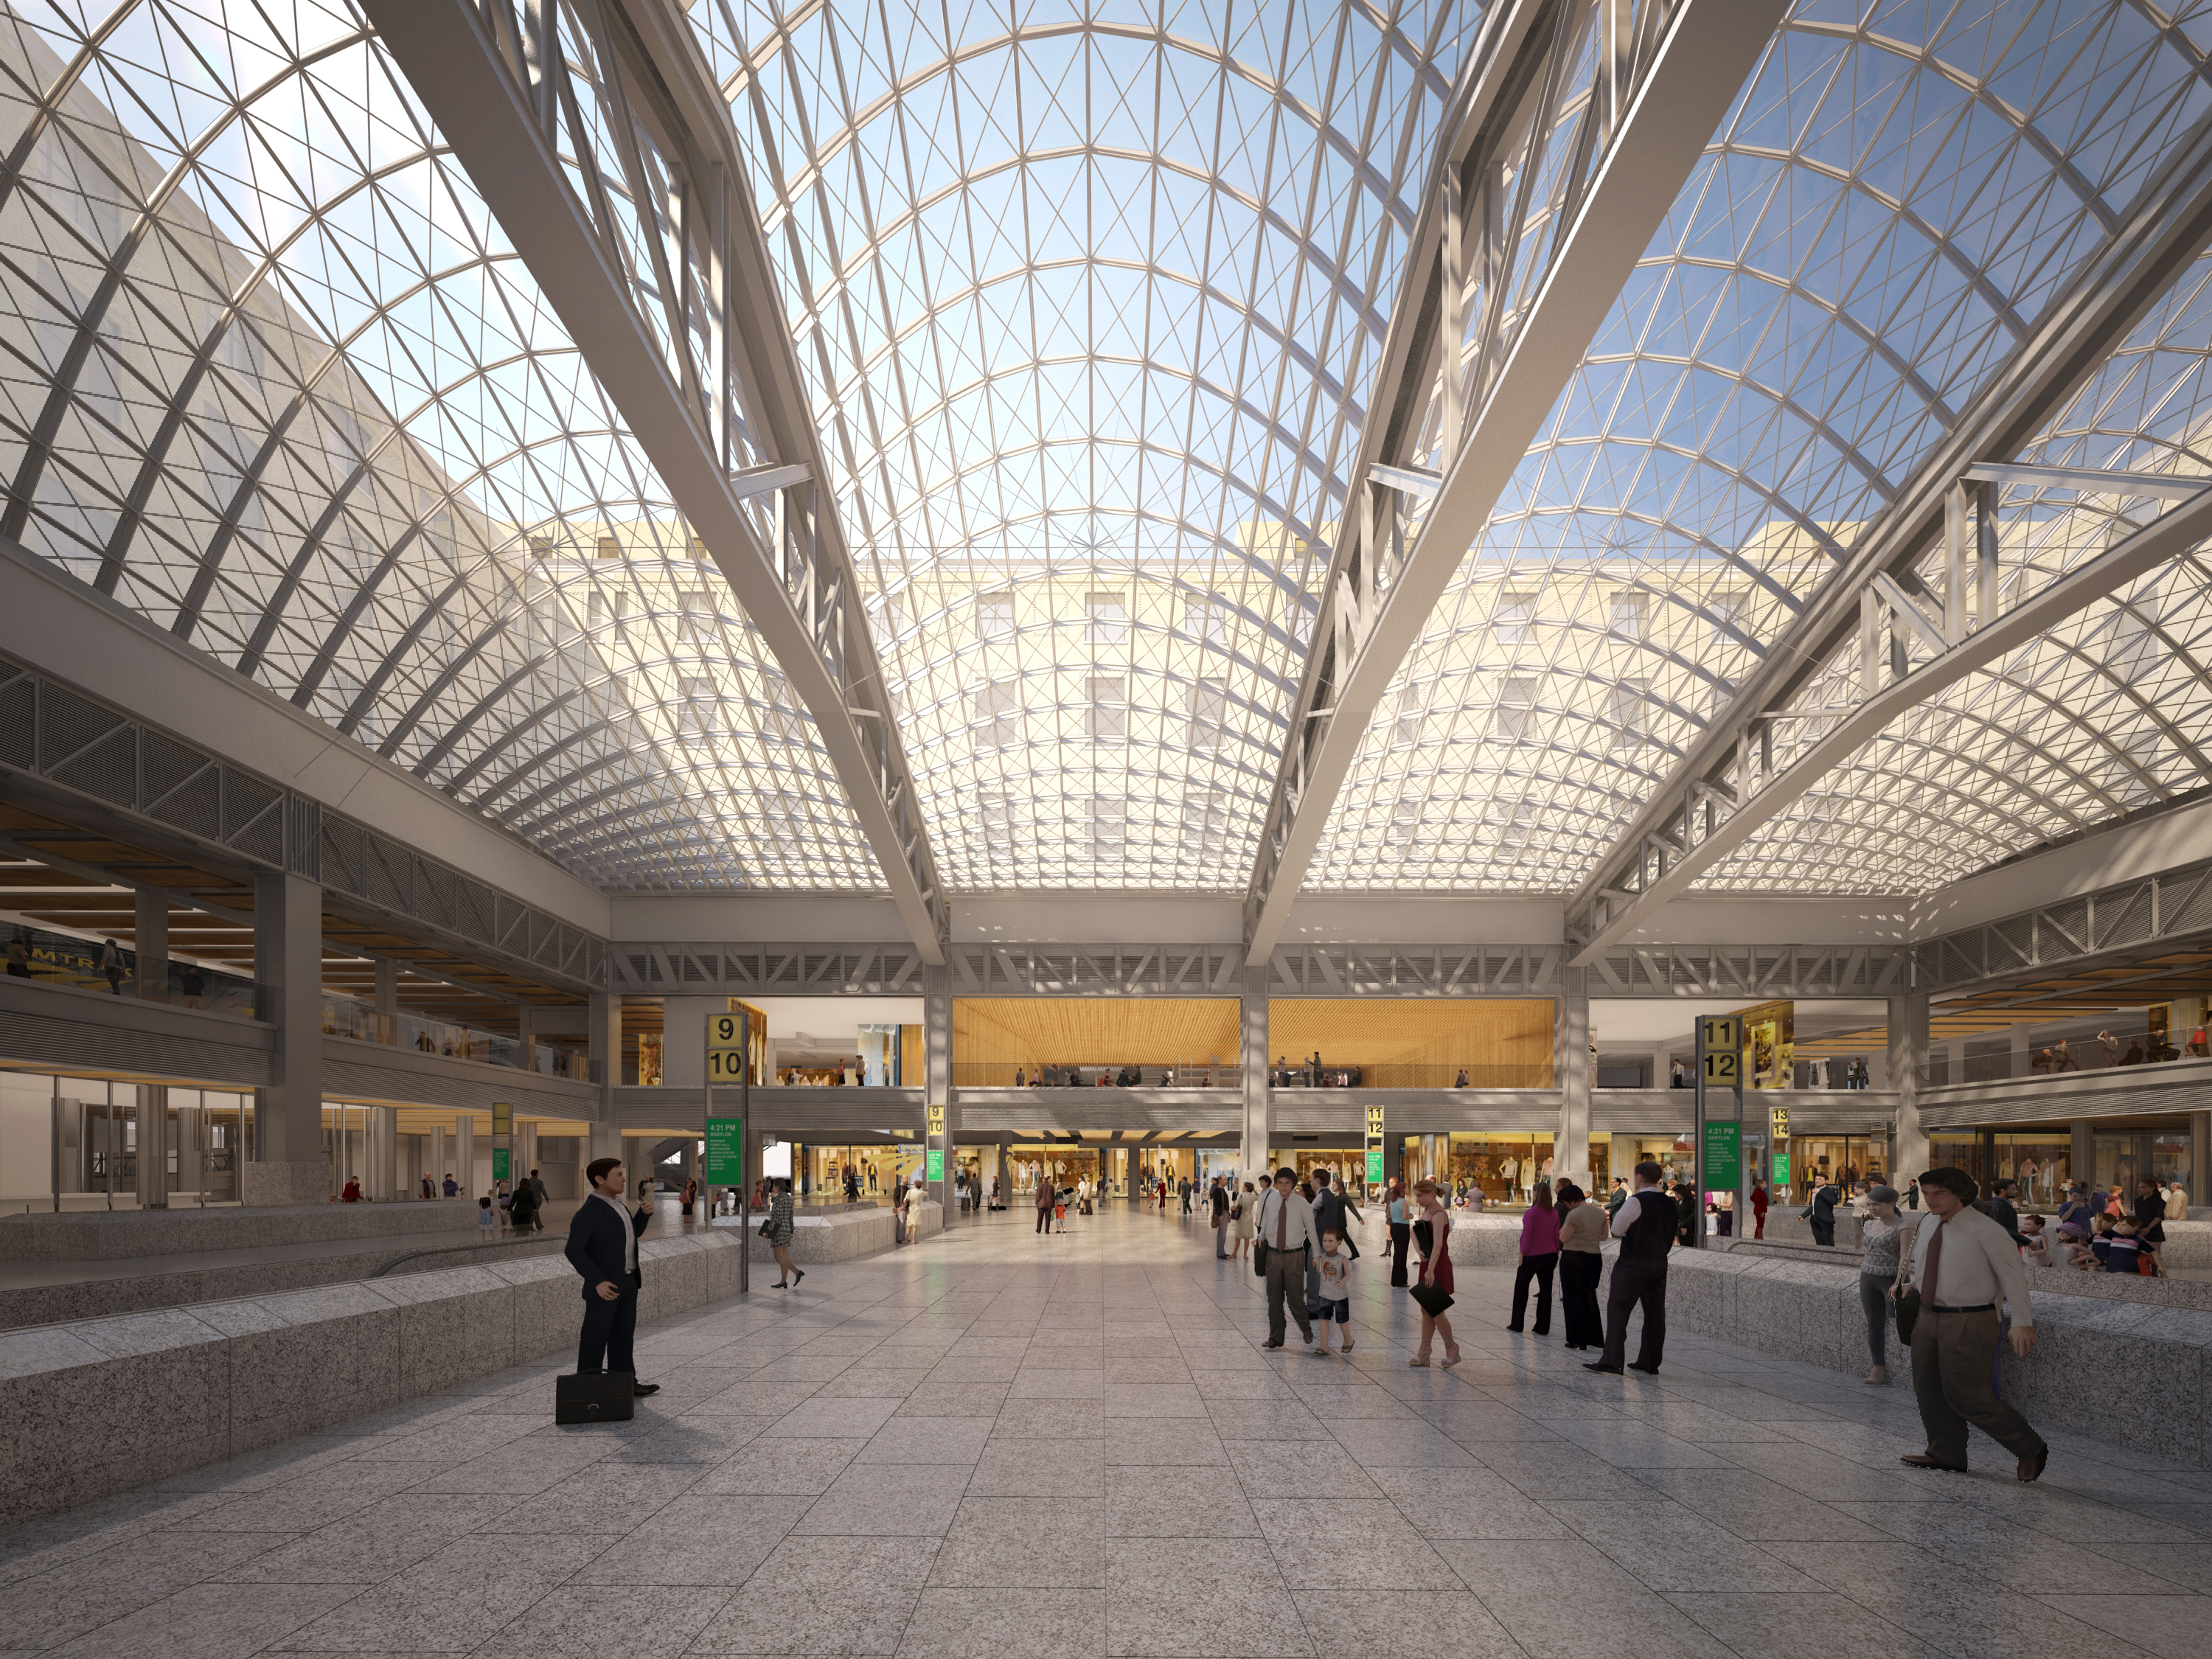 6th proposal of governor cuomo s 2016 agenda transform penn station